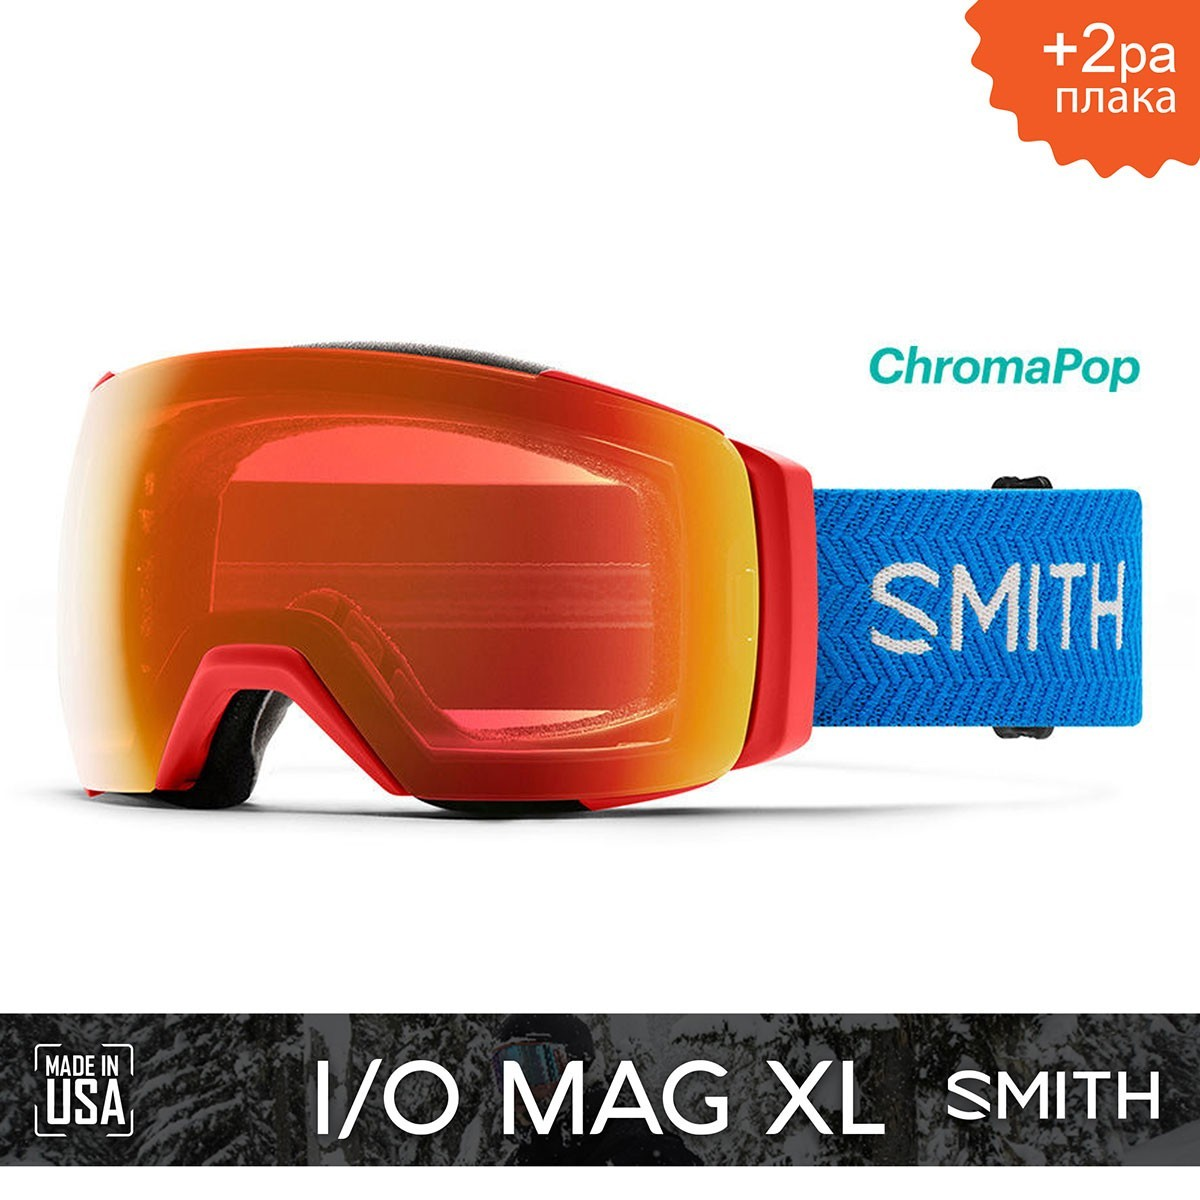 SMITH IO MAG XL Rise Block | S2 CHROMAPOP Everyday Red Mirror - Изображение - AQUAMATRIX